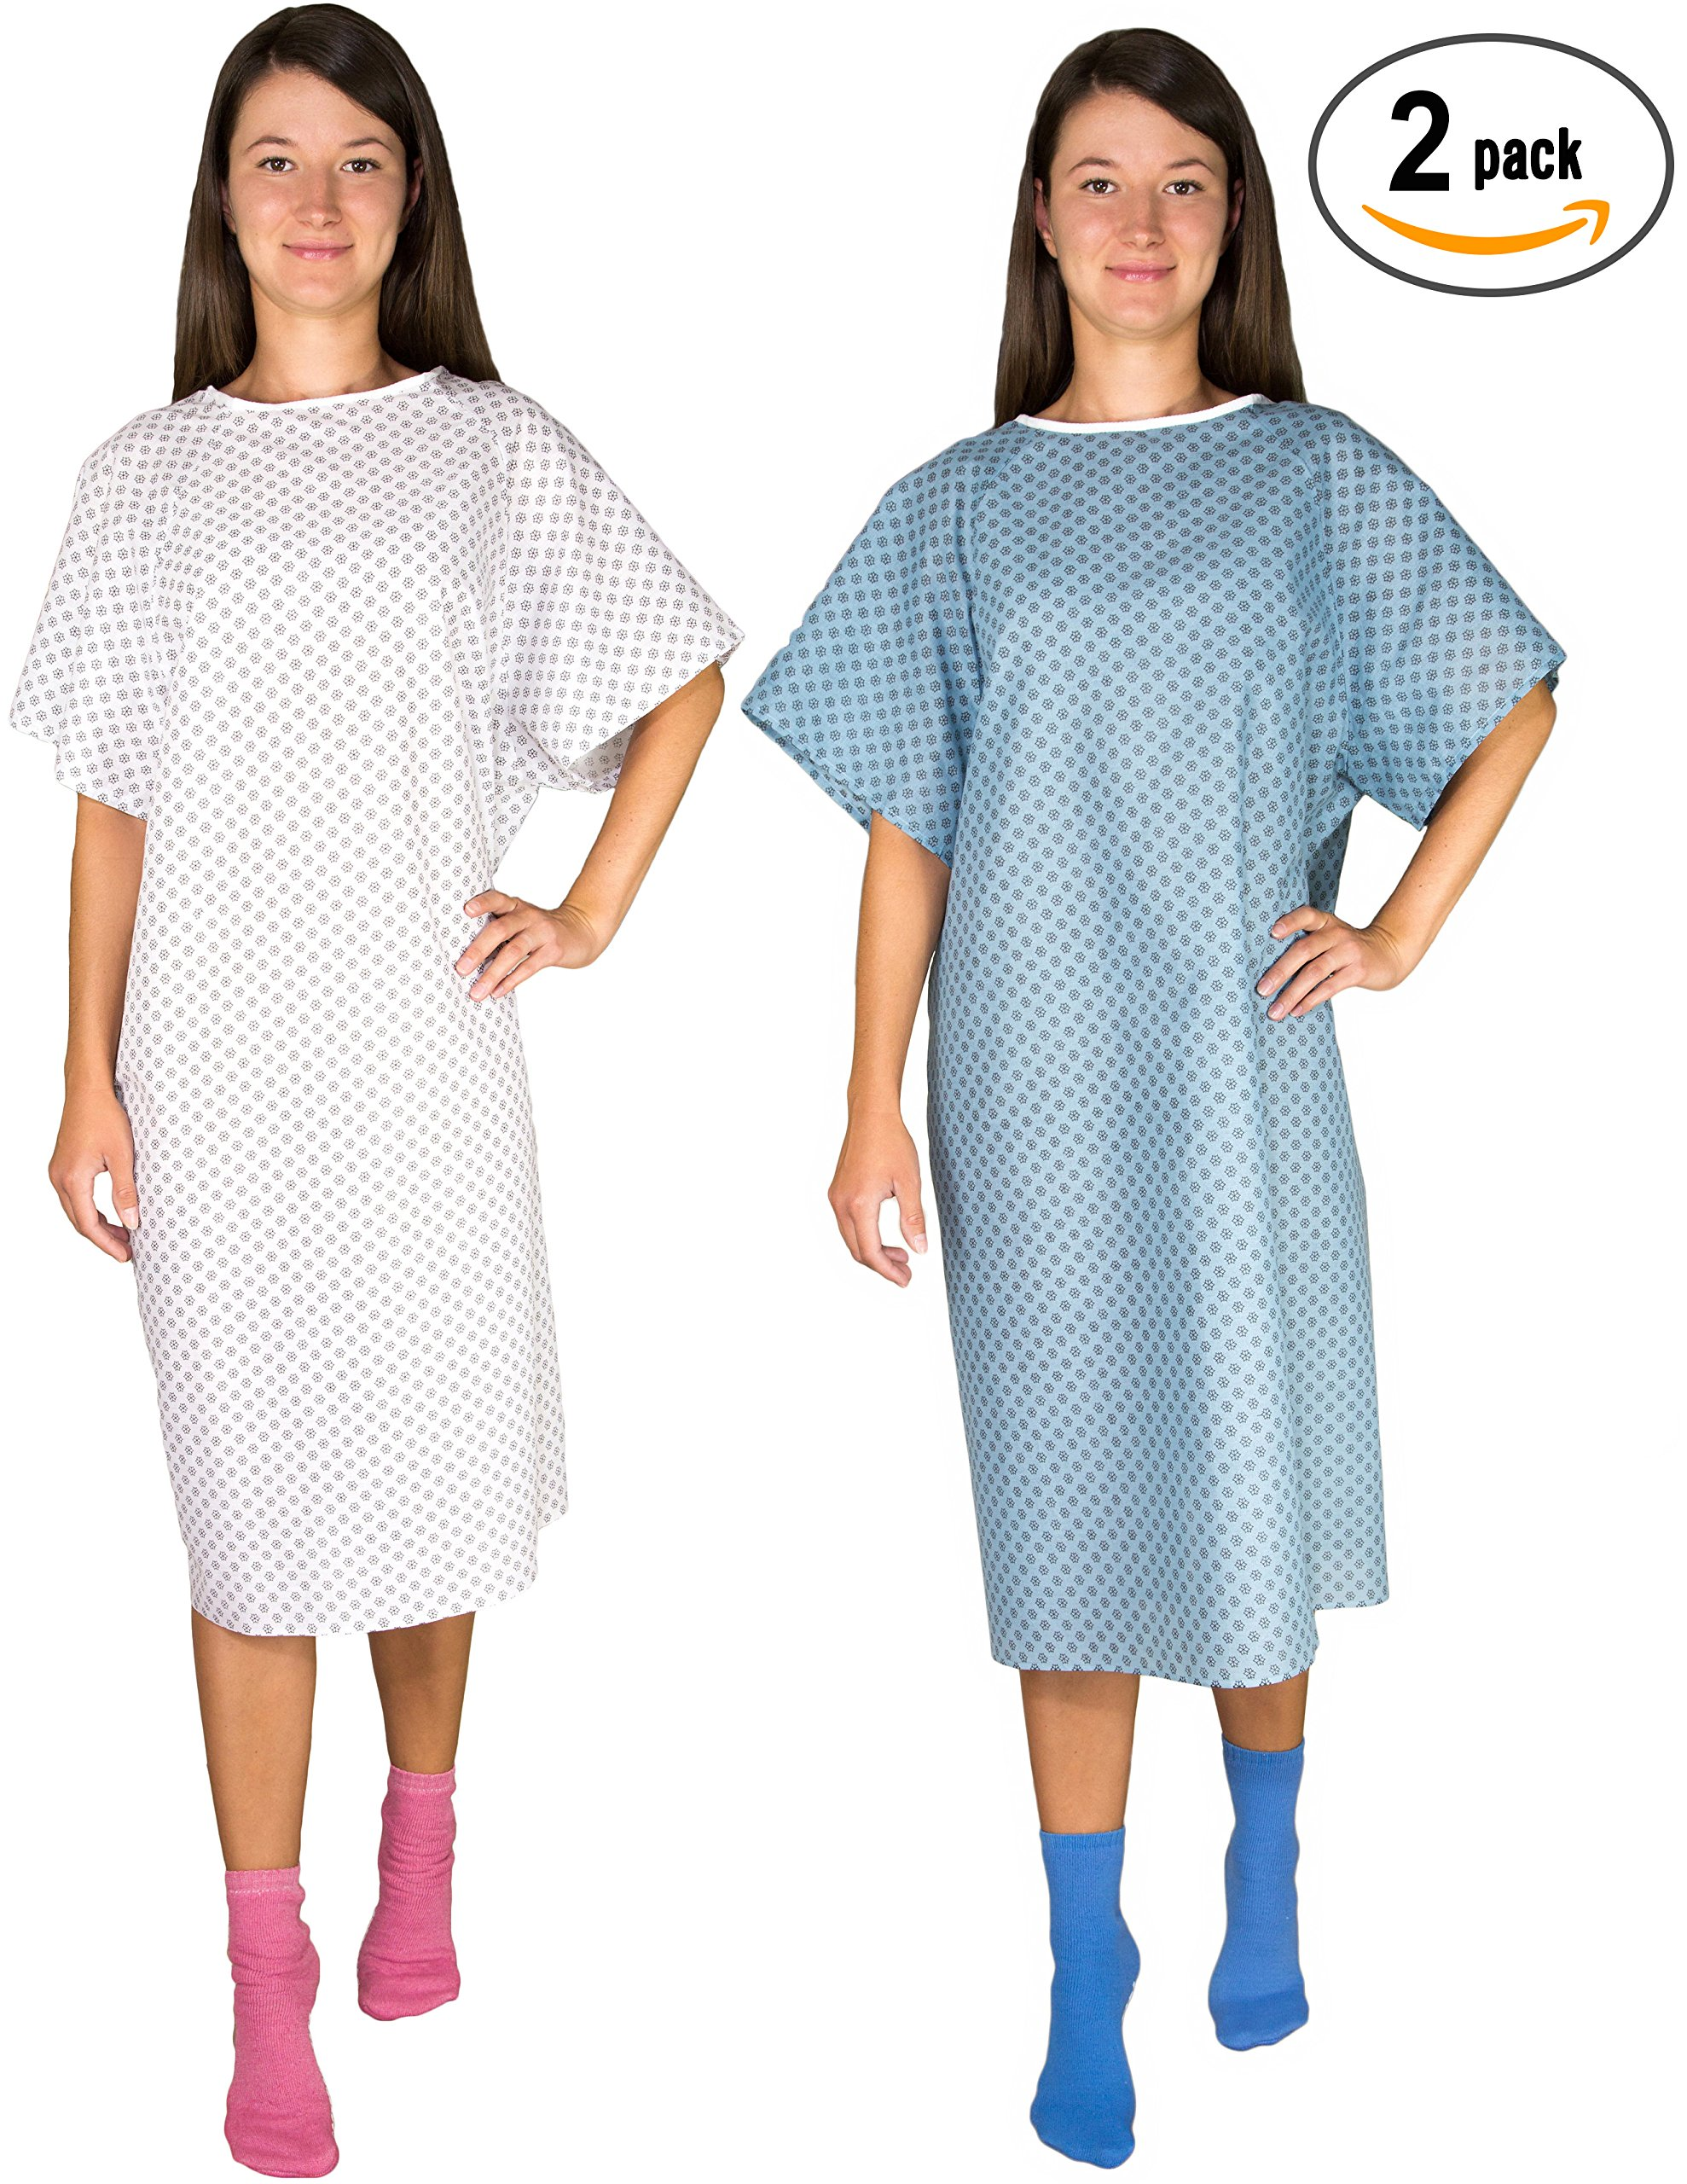 2 Pack - Blue and White Hospital Gown with Back Tie / Hospital Patient Gown with Ties - One Size Fits All